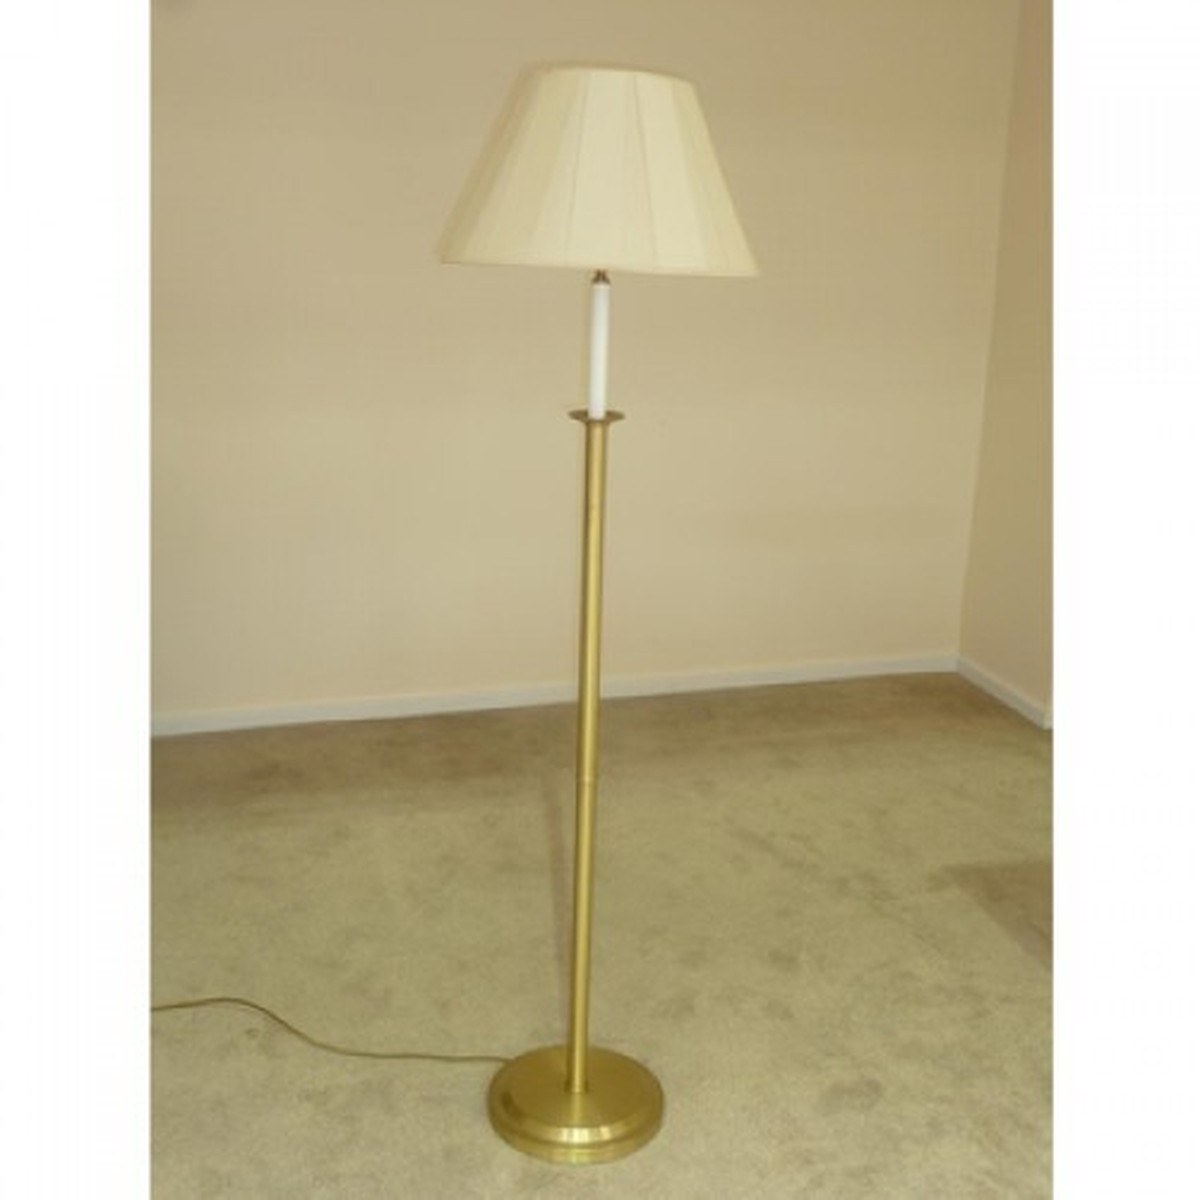 Cheap Floor Lamps For Sale Curlew Secondhand Marquees Mayfair Furniture